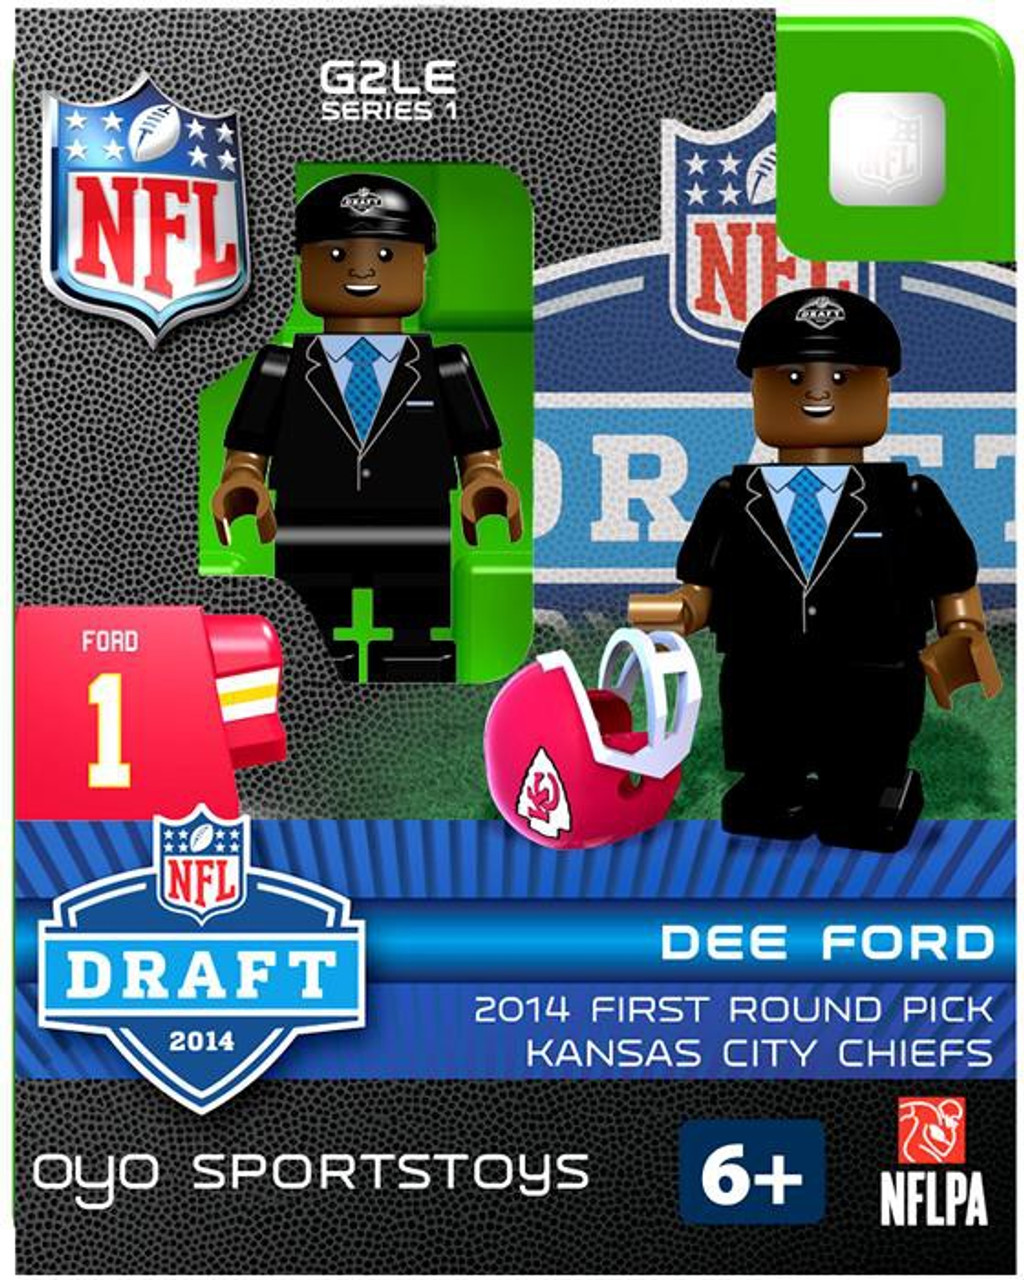 Kansas City Chiefs NFL 2014 Draft First Round Picks Dee Ford Minifigure